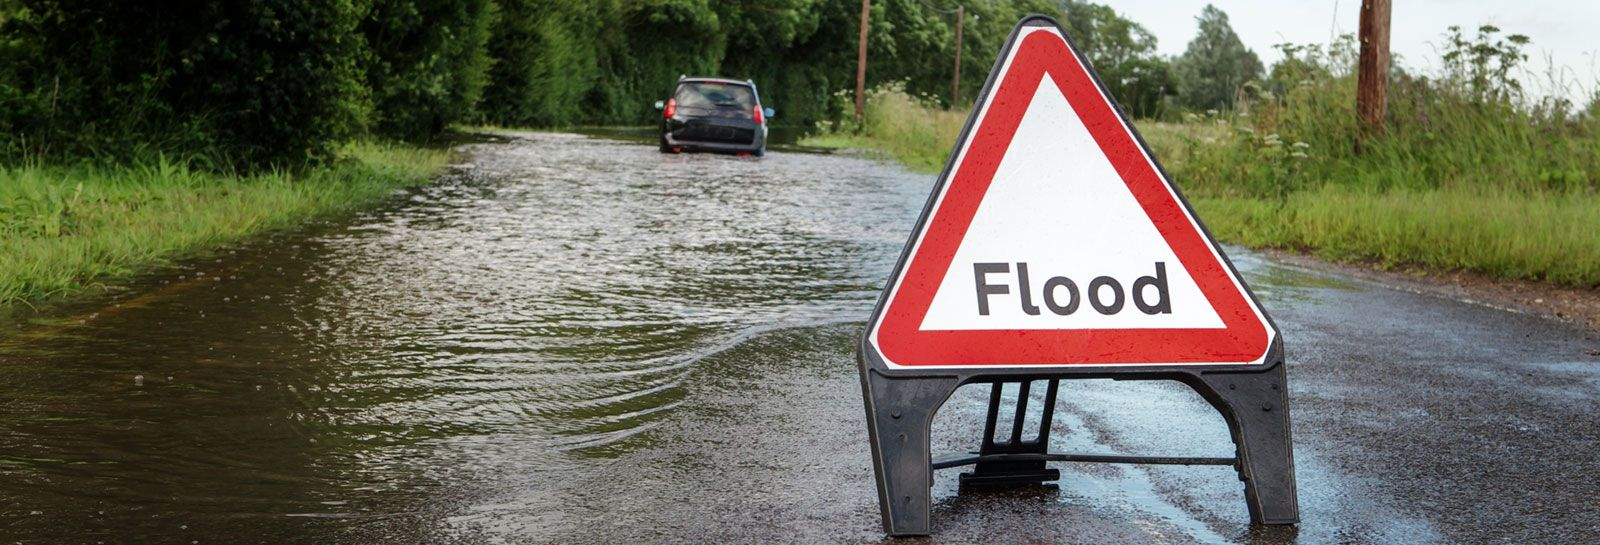 flooded road with warning sign banner image